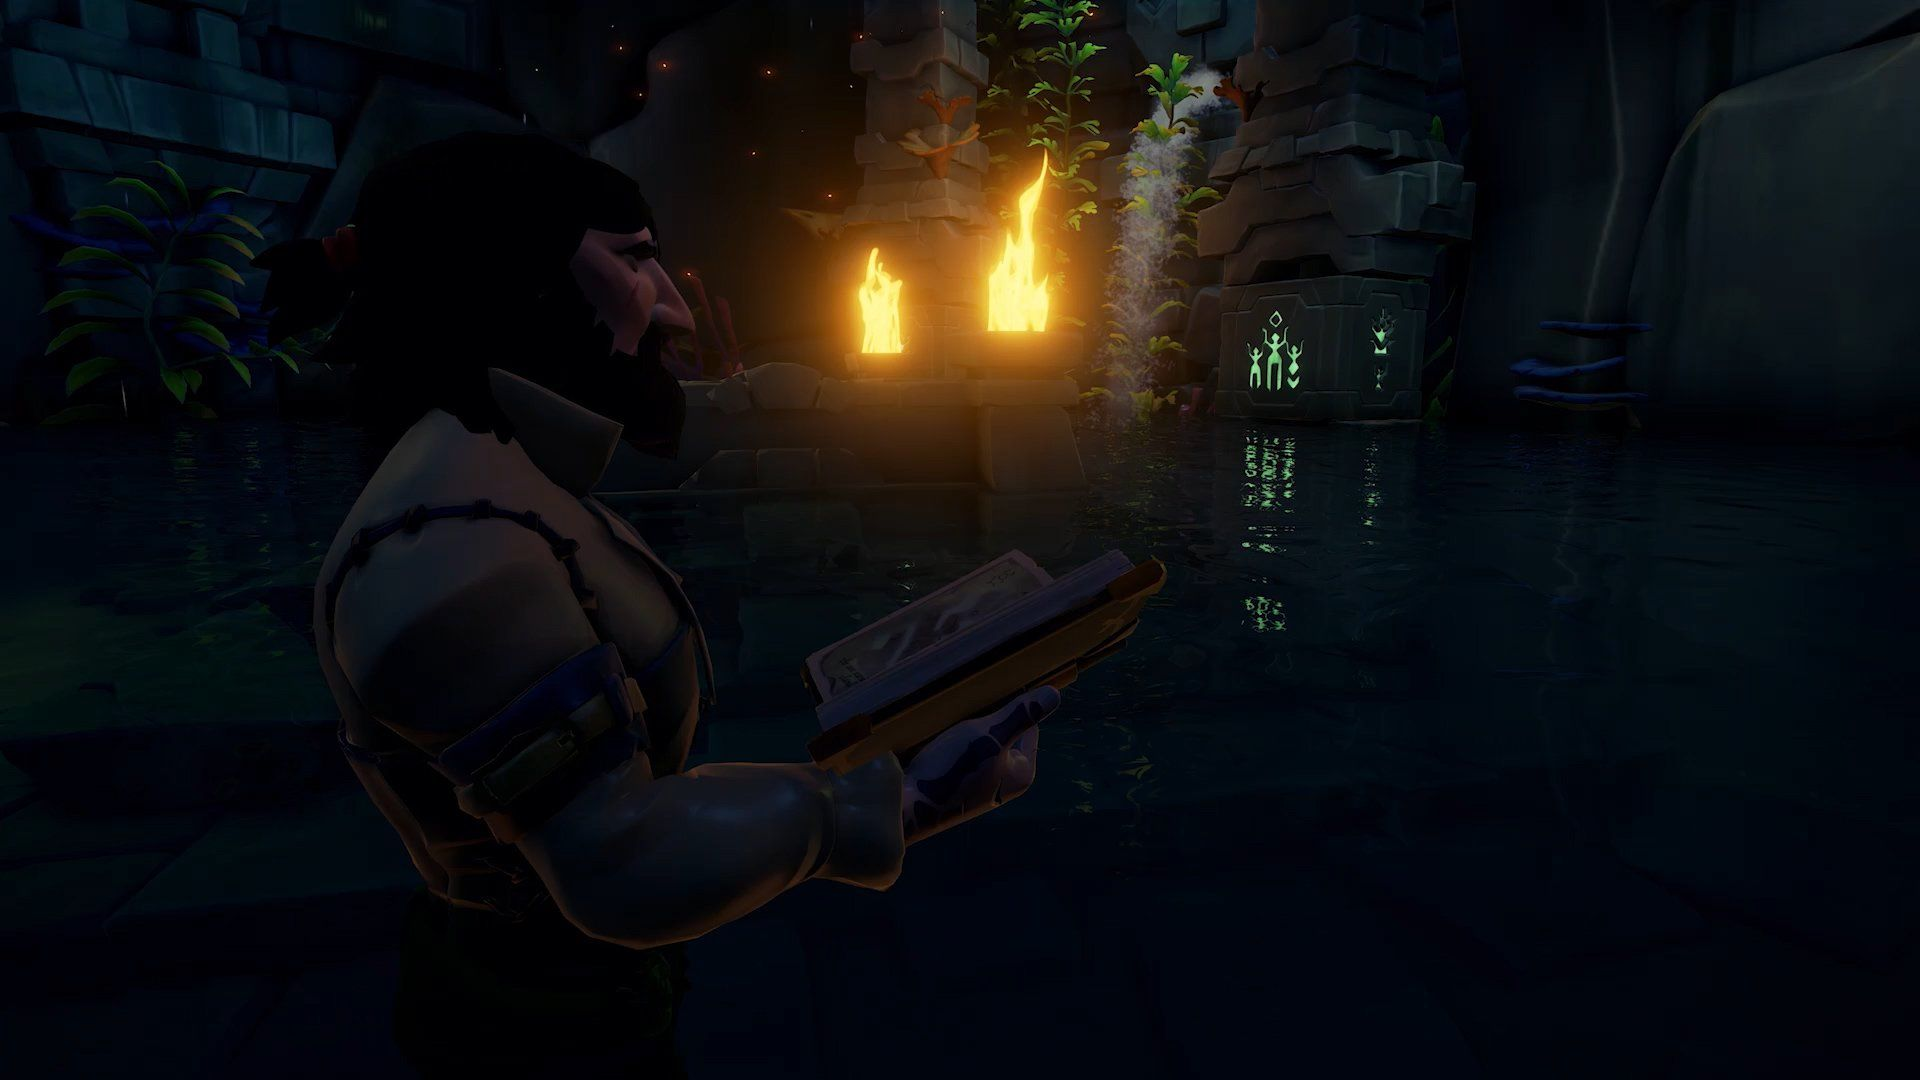 sea-of-thieves-tall-tales-trap-room sea, of, thieves, tall, tales, guide, shroudbreaker, ancient, chest, location, islands, locations, ancient, vault, puzzle, how, to solve